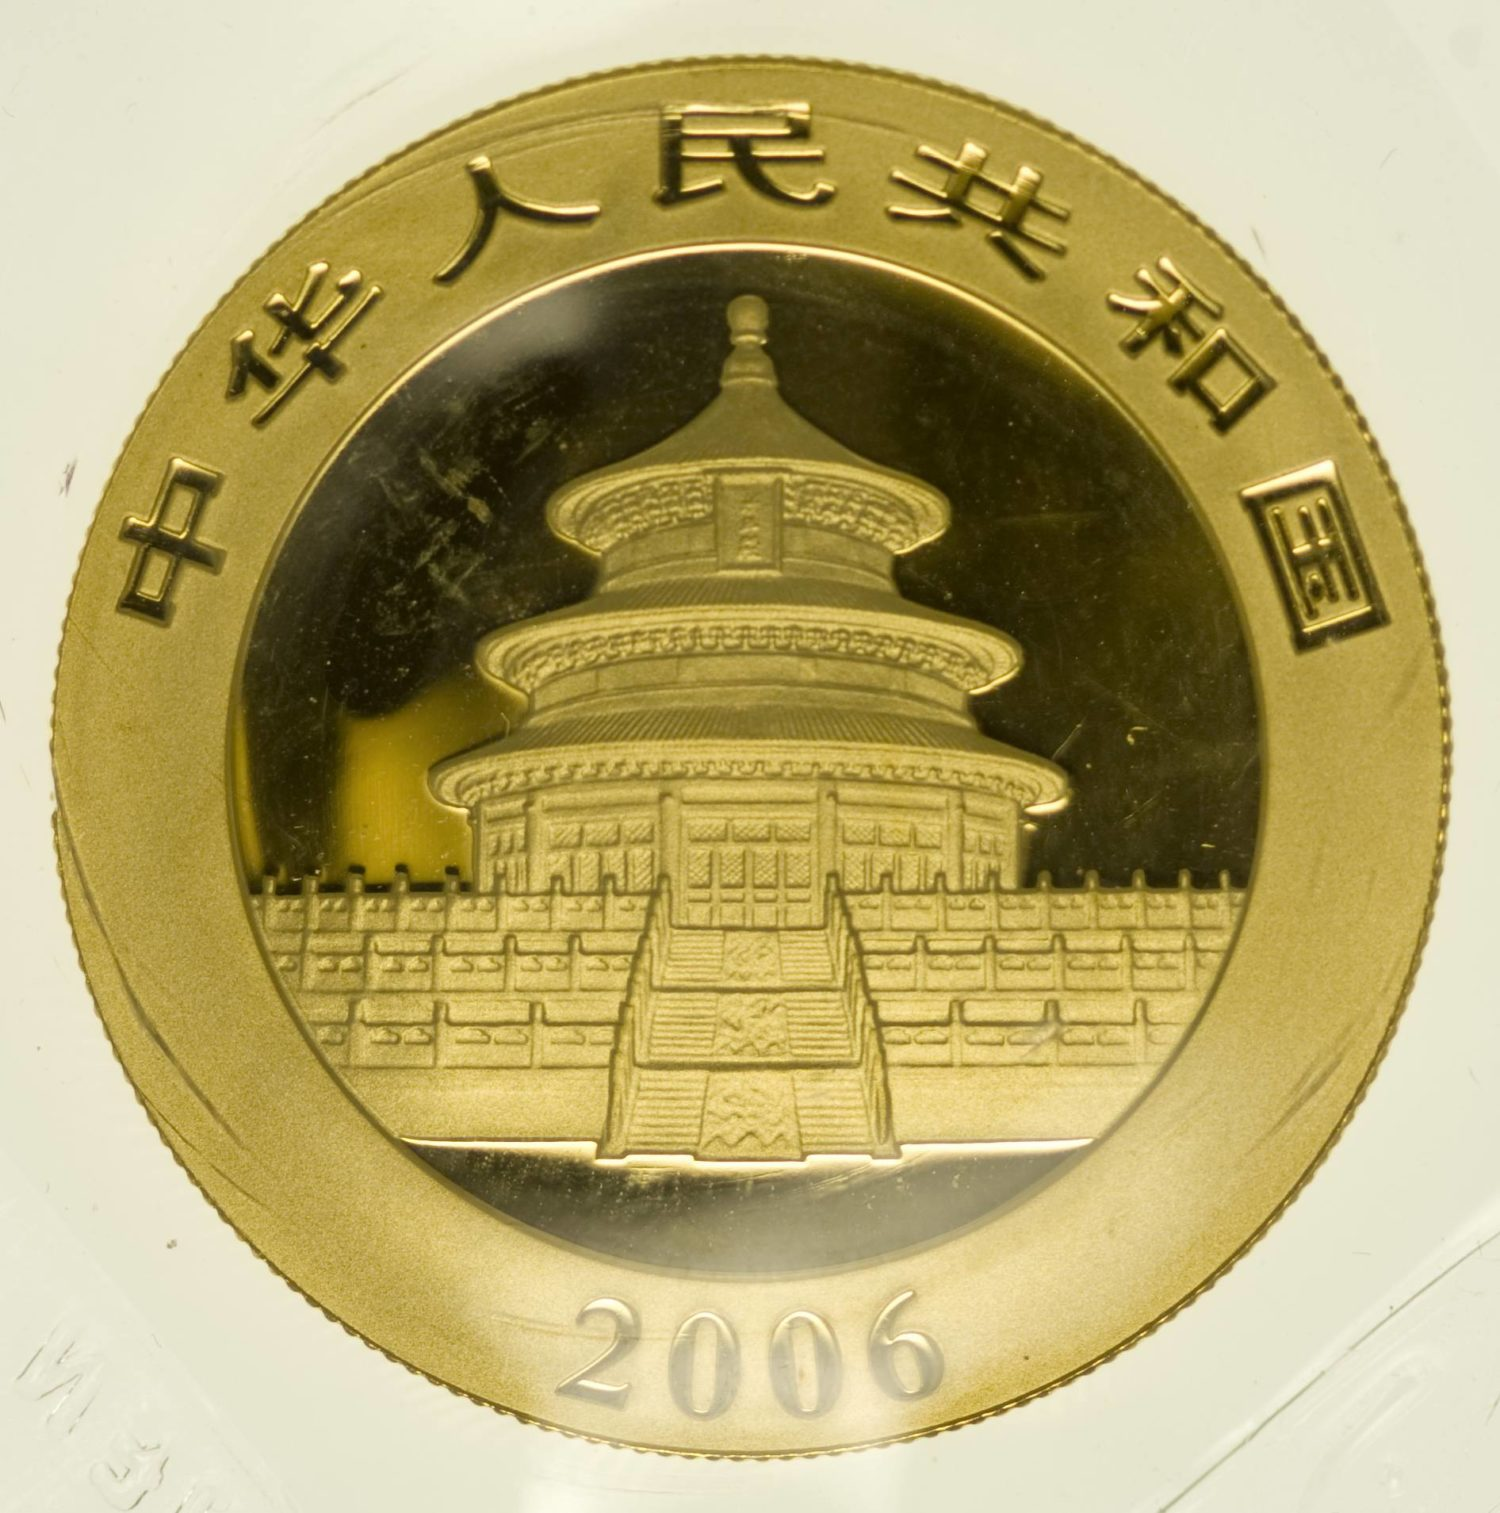 1 Unze Goldmünze China Panda 2006 500 Yuan 31,1 Gramm Gold RAR